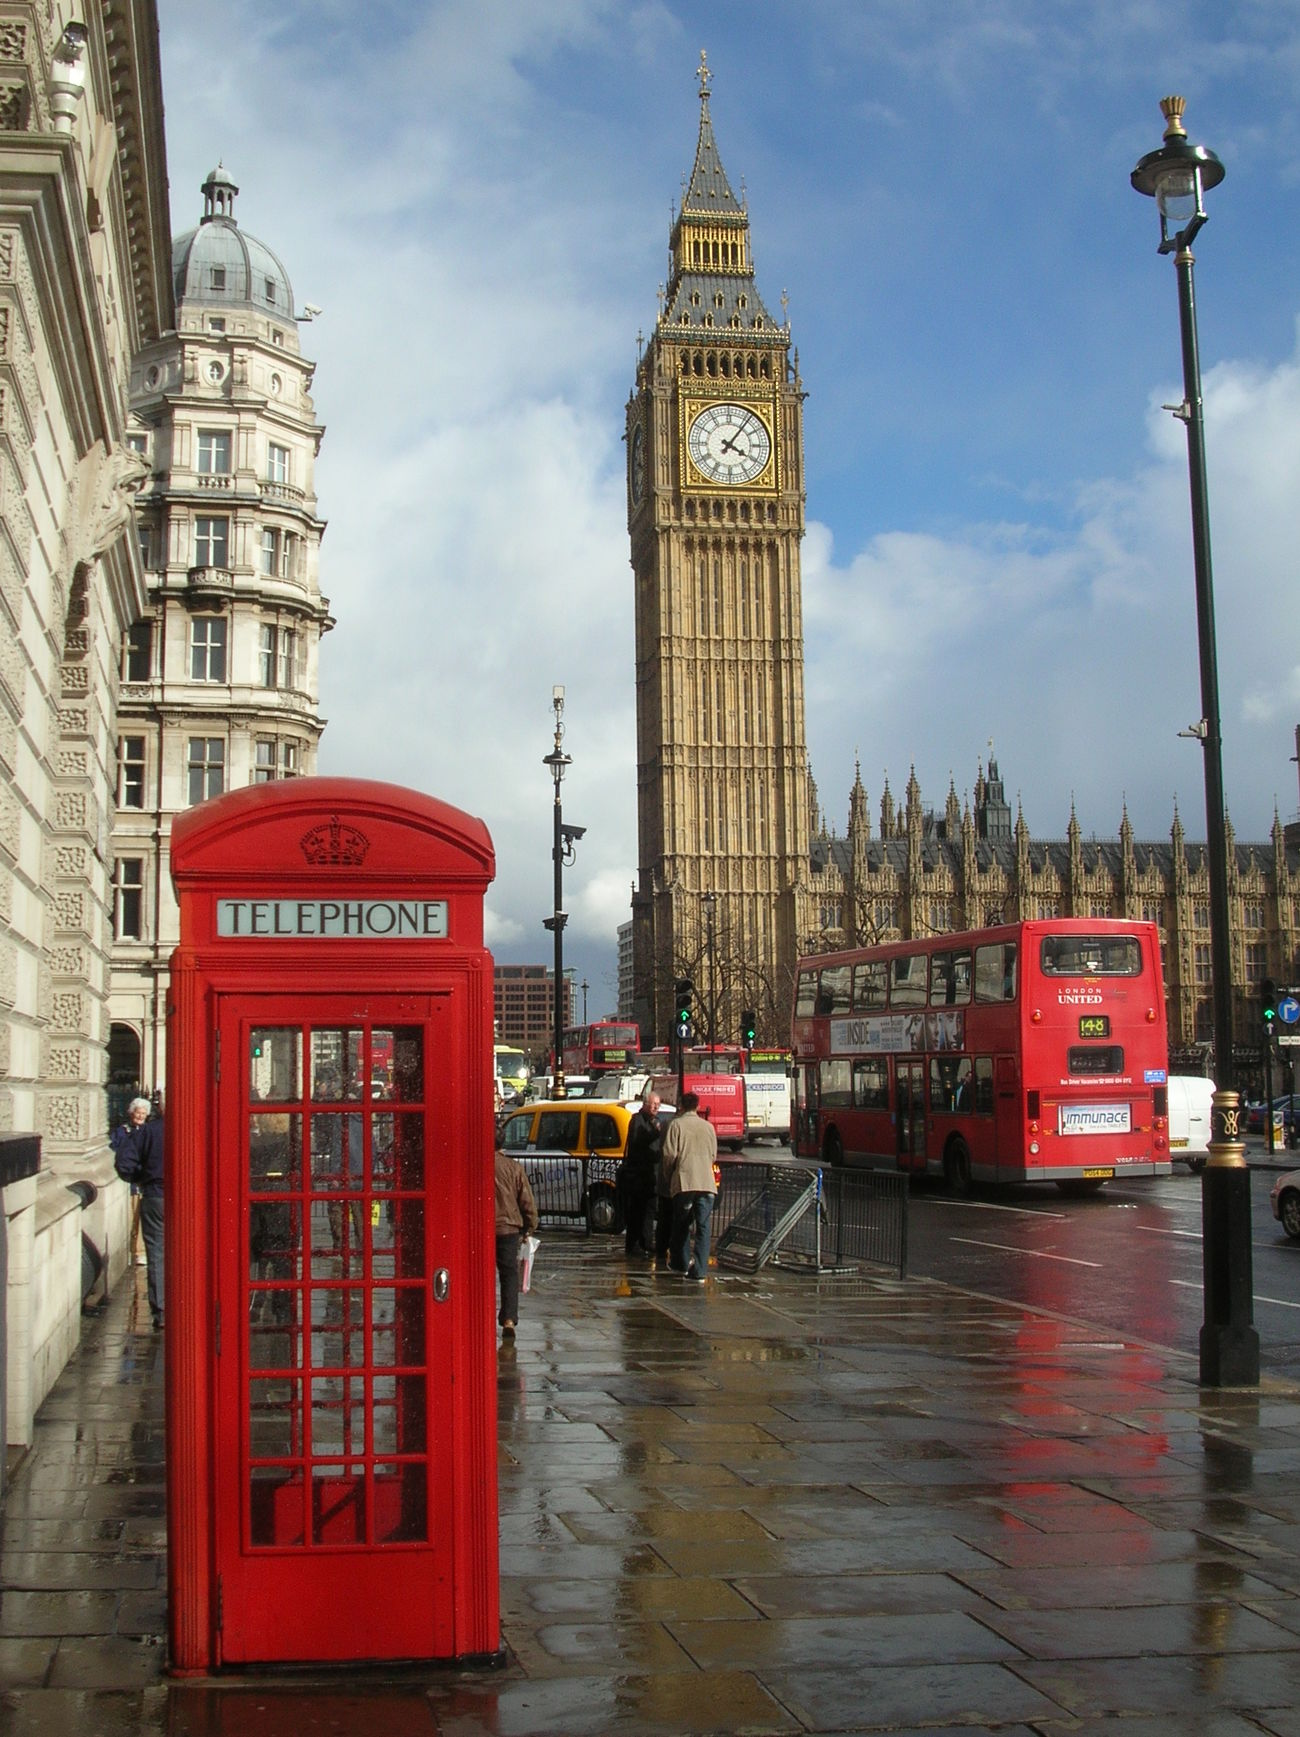 I'm flying to London tomorrow February 2nd 2015